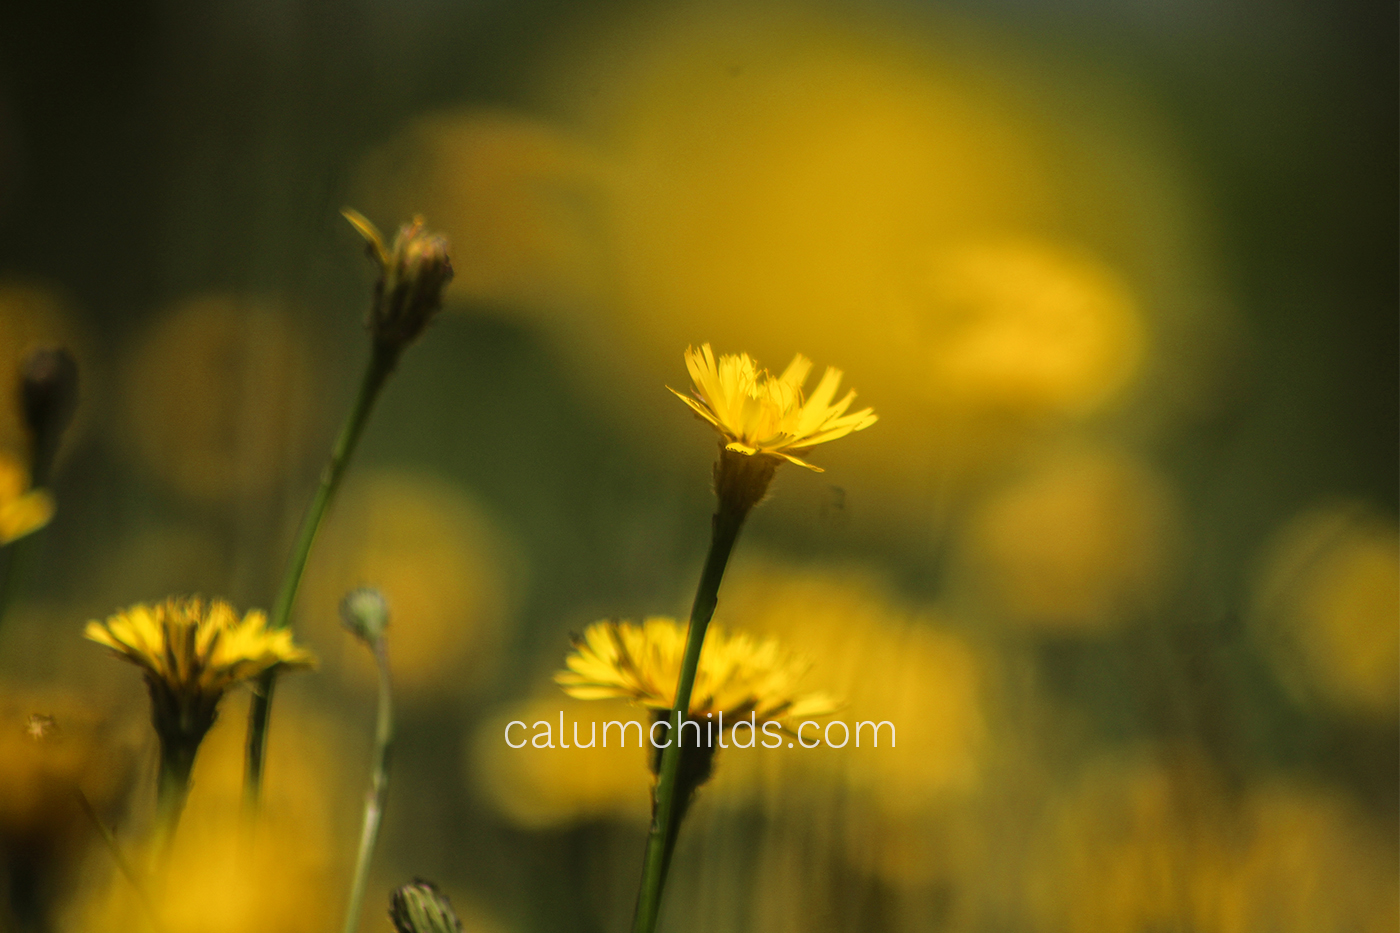 A dandelion is surrounded by blobs of yellow.